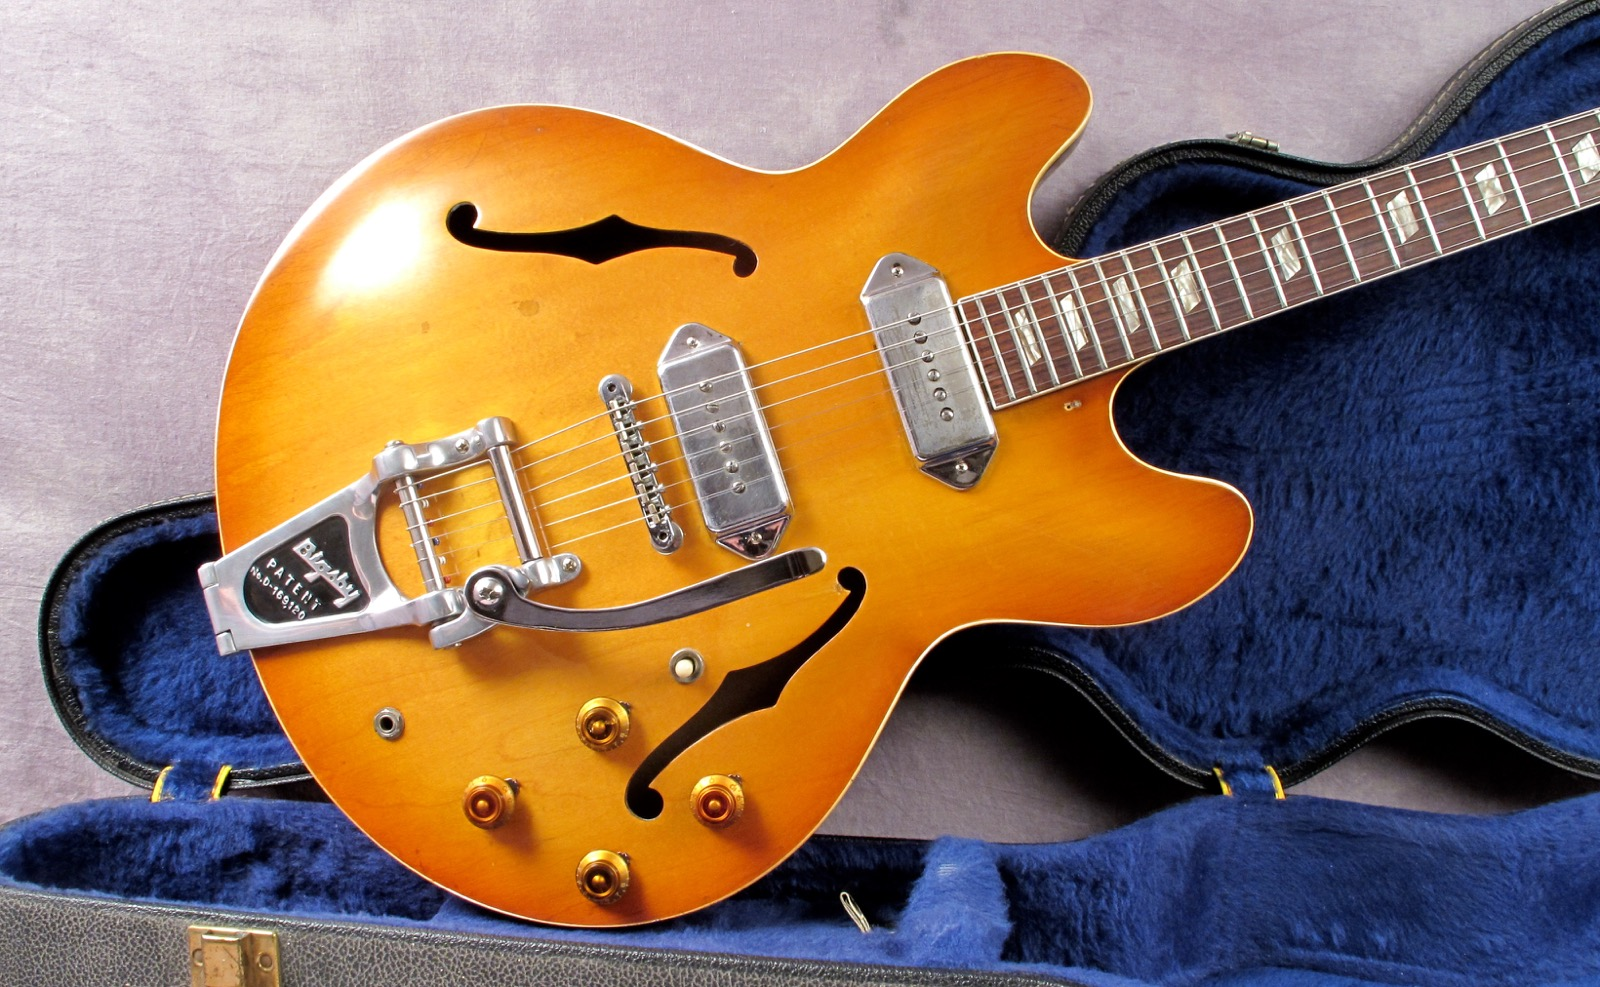 Epiphone Casino P90 Replacement Poker Supplies Tacoma Wa Gibson Es 330 Wiring Diagram For Home Kent Armstrong Pickup 7895 Eur Quantity Add To Cart